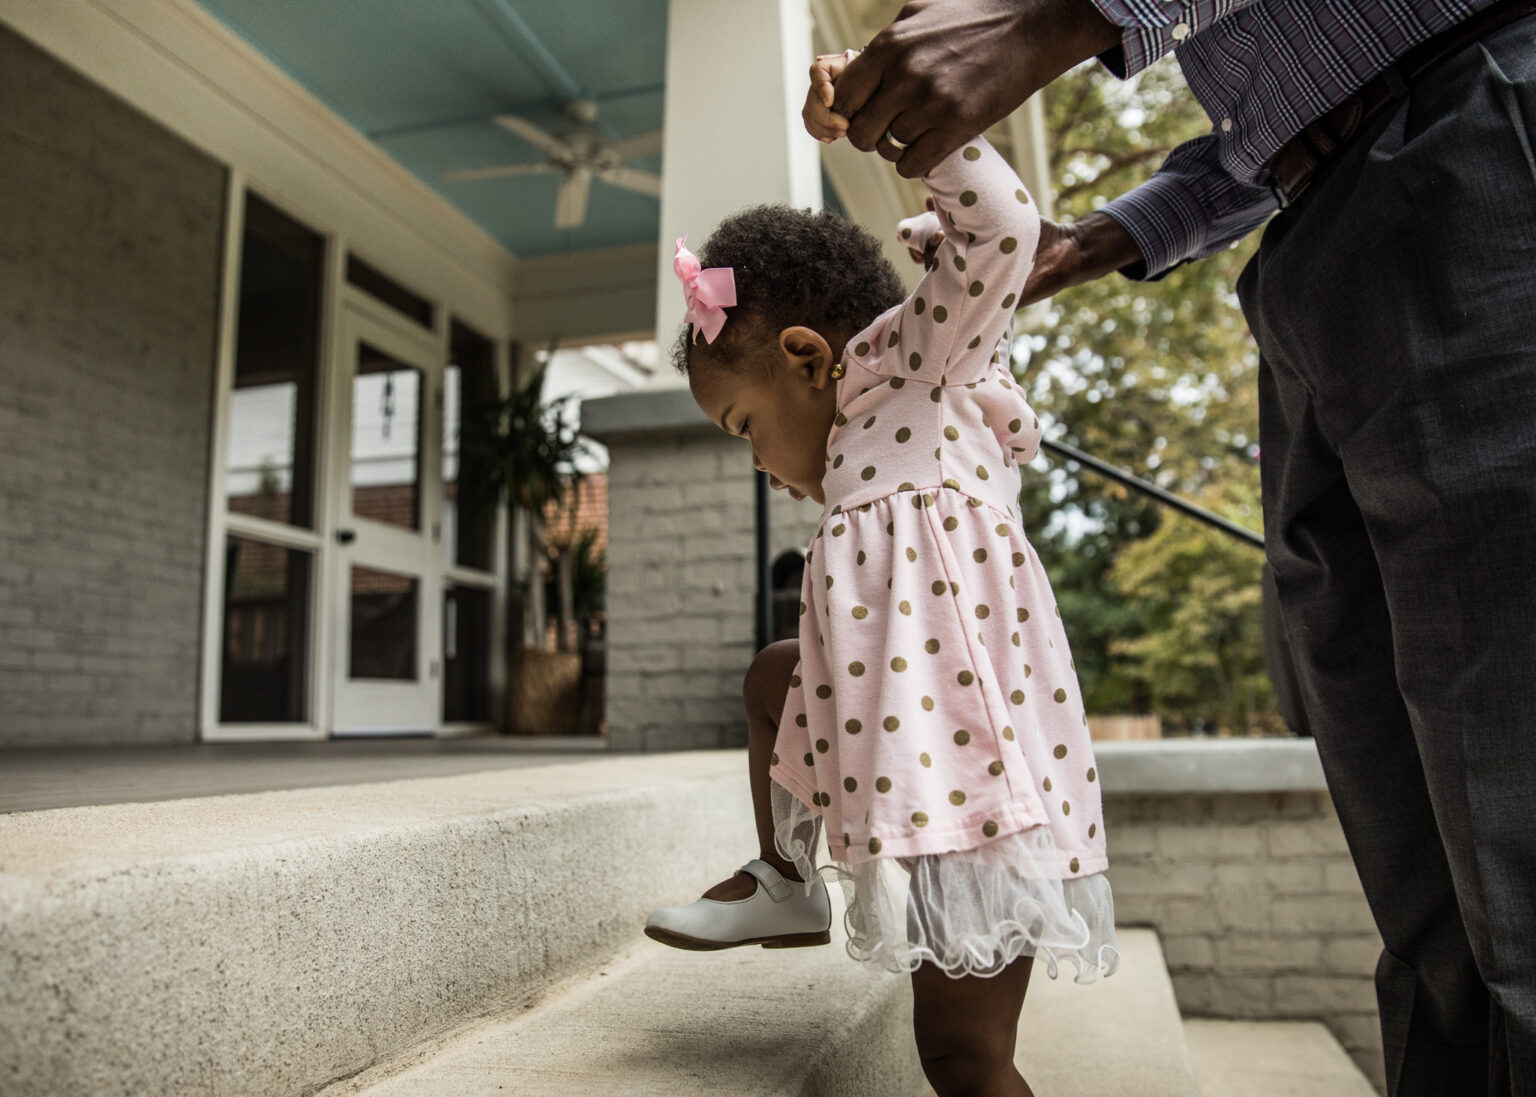 The myth of the absent Black father